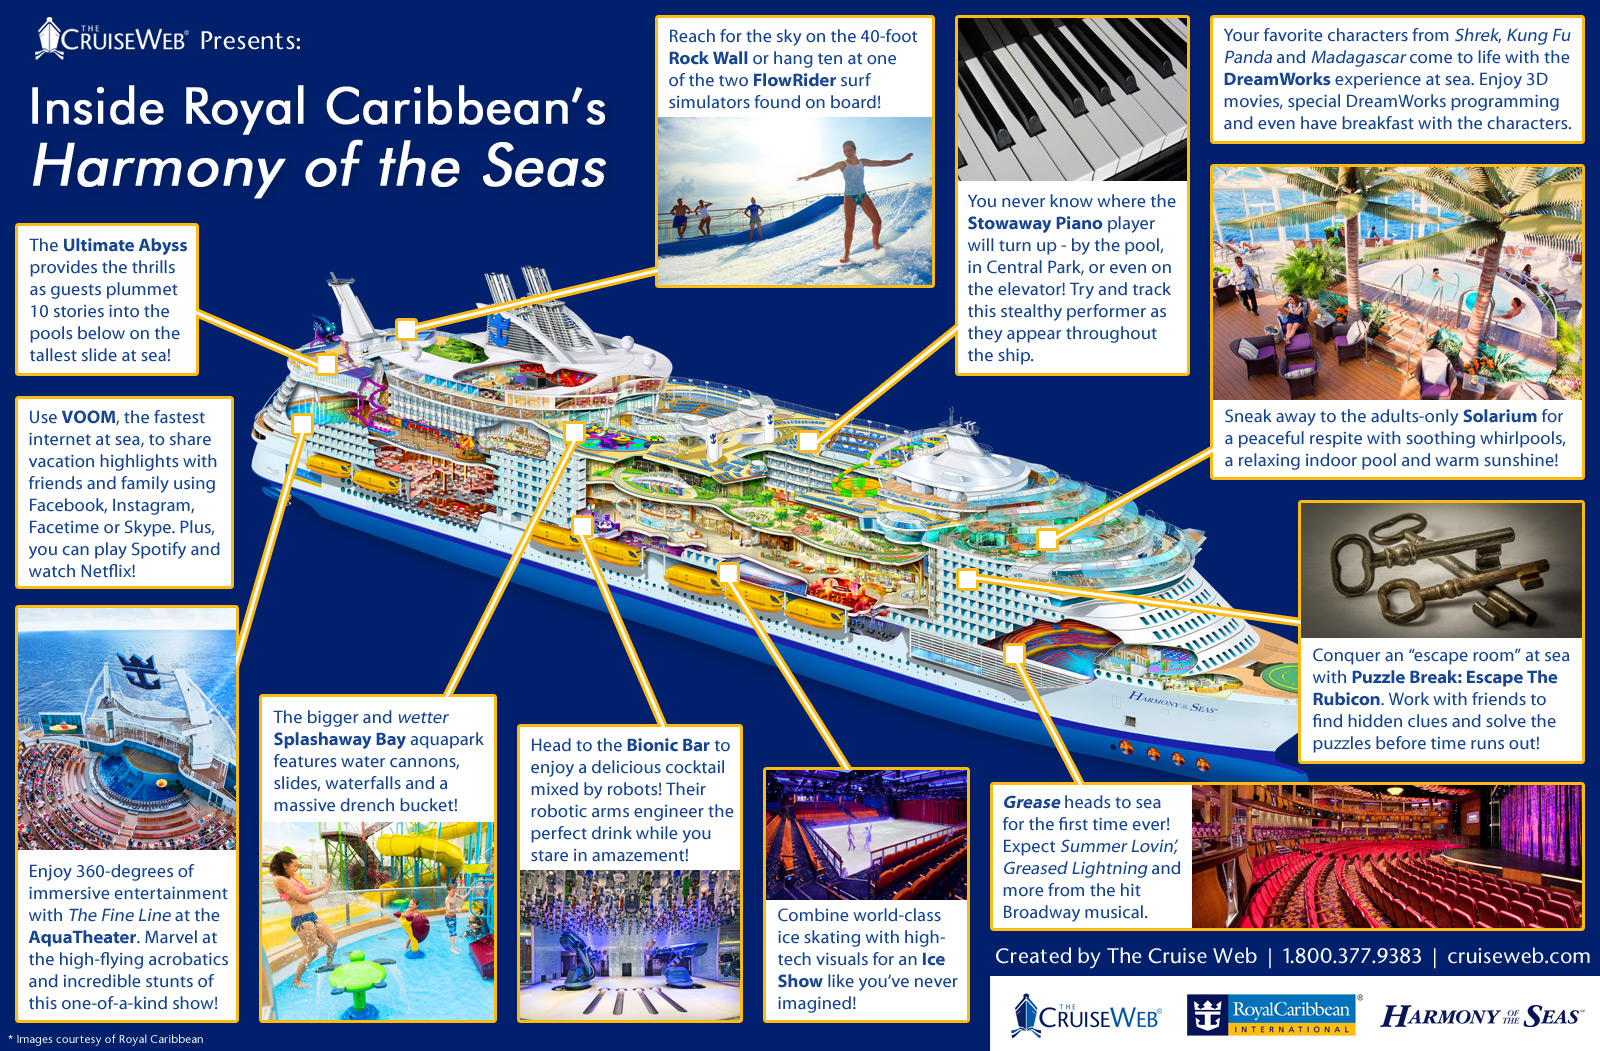 Inside Royal Caribbean's Harmony of the Seas: An Infographic